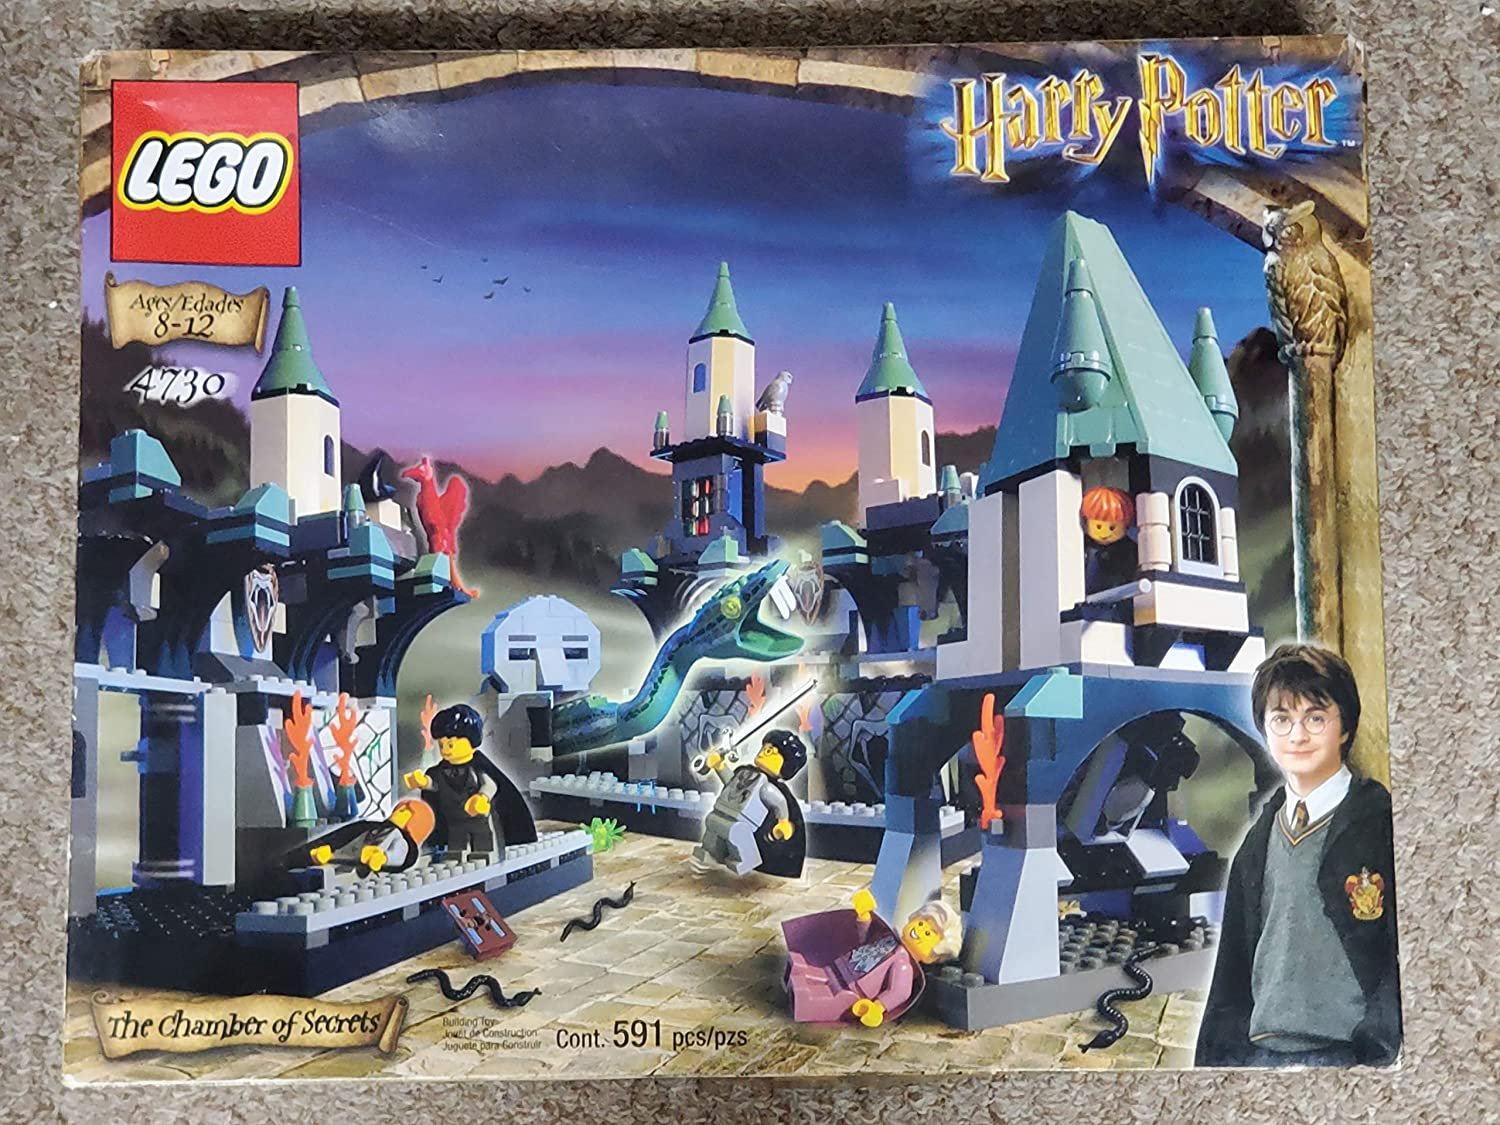 LEGO Harry Potter The Chamber of Secrets Set 4730